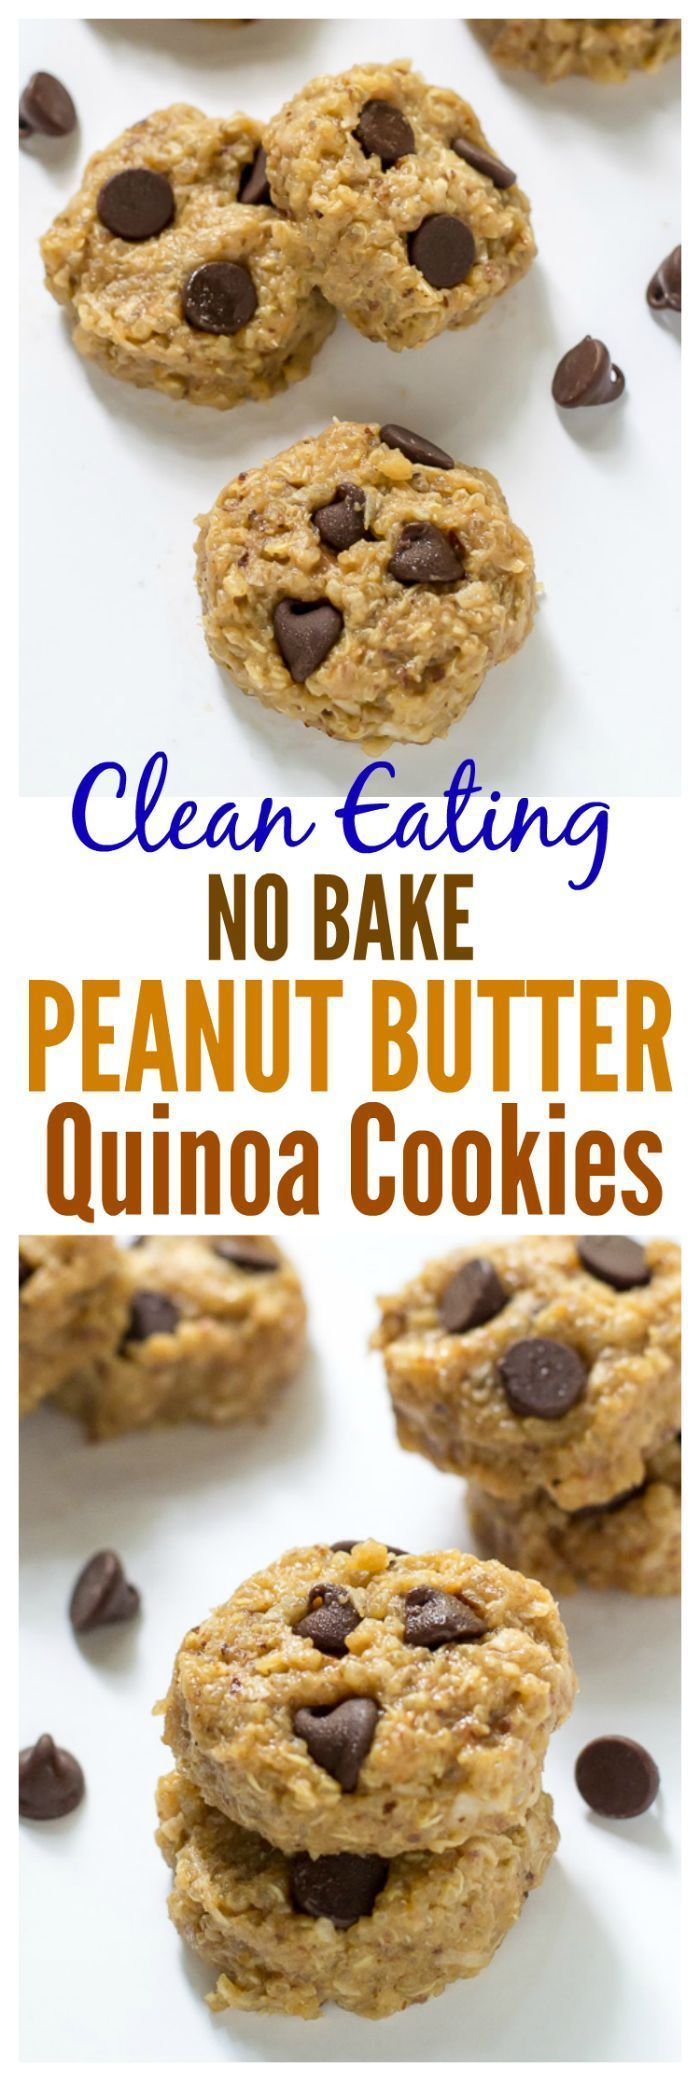 Eating No Bake Peanut Butter Quinoa Cookies. Soft and chewy cookies with NO BUTTER and NO FLOUR. These taste amazing! Gluten free.